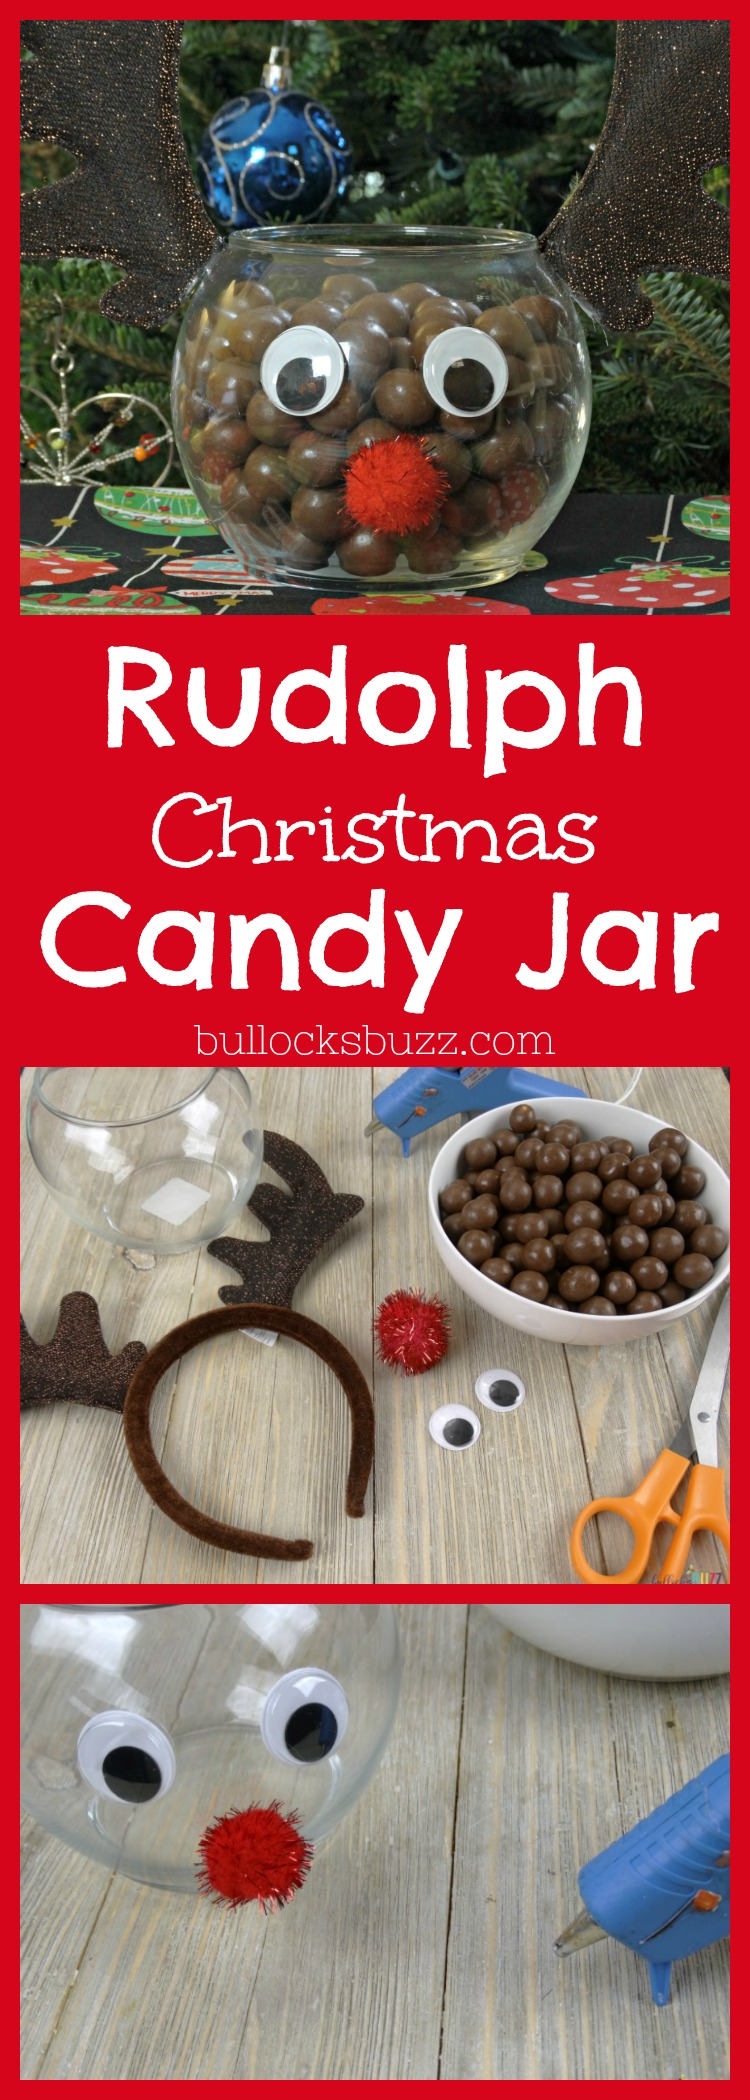 Diy Rudolph Christmas Candy Jar Simple Christmas Craft